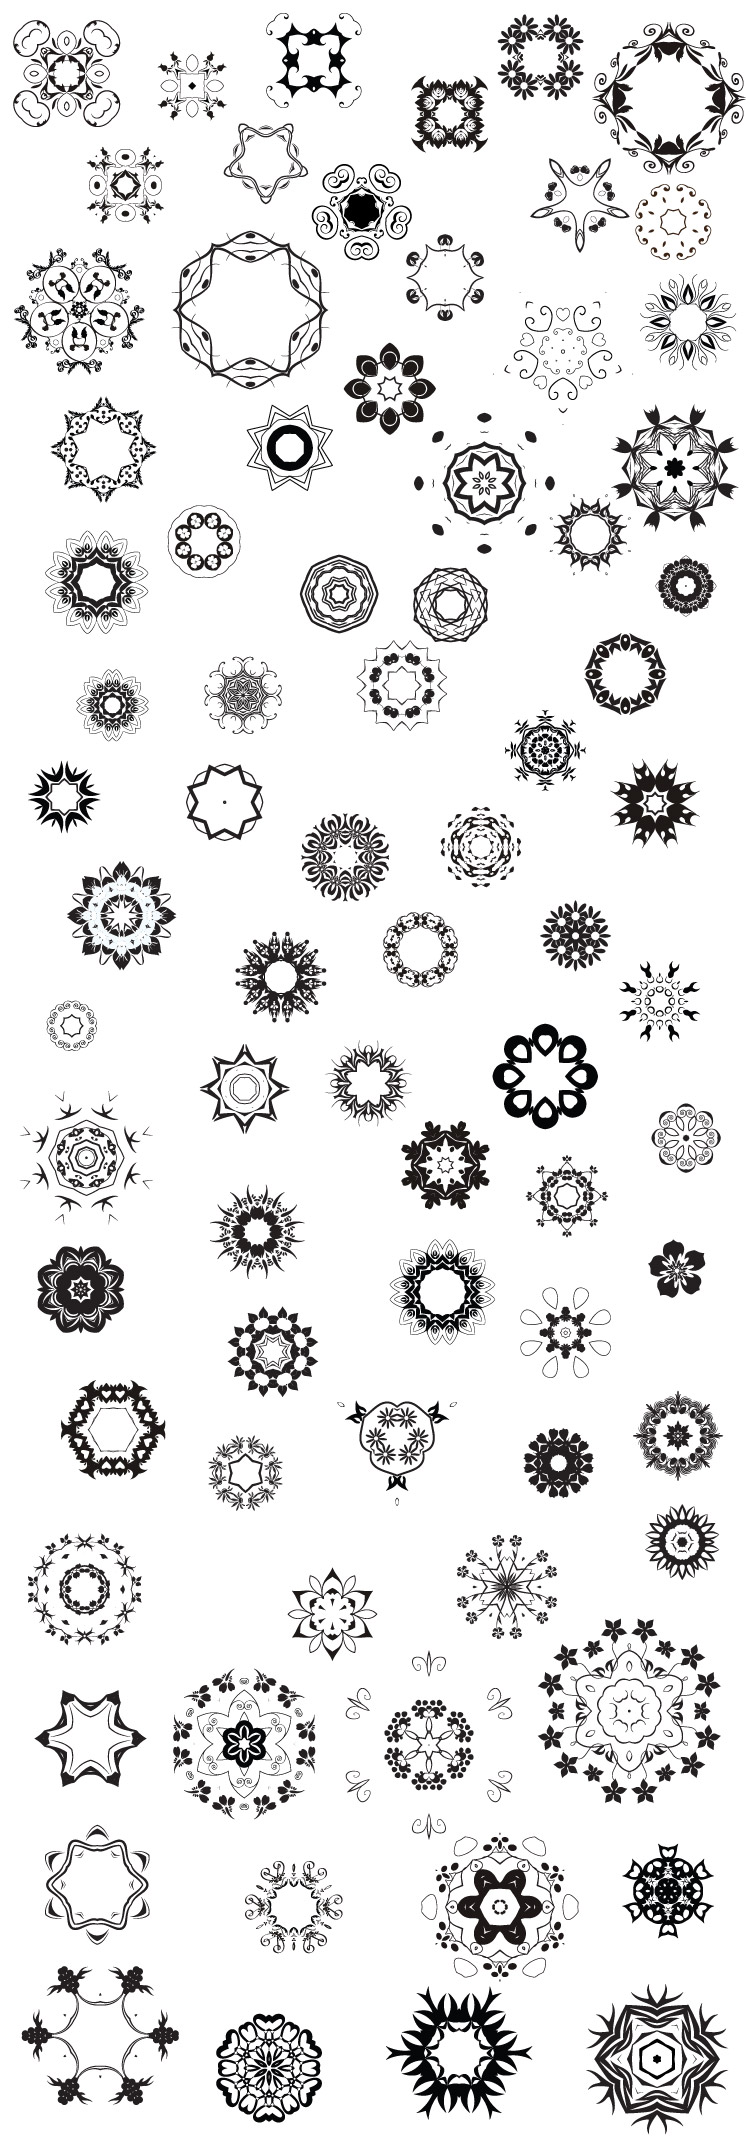 80 abstract decorative vectors 80+ Abstract decorative vector elements